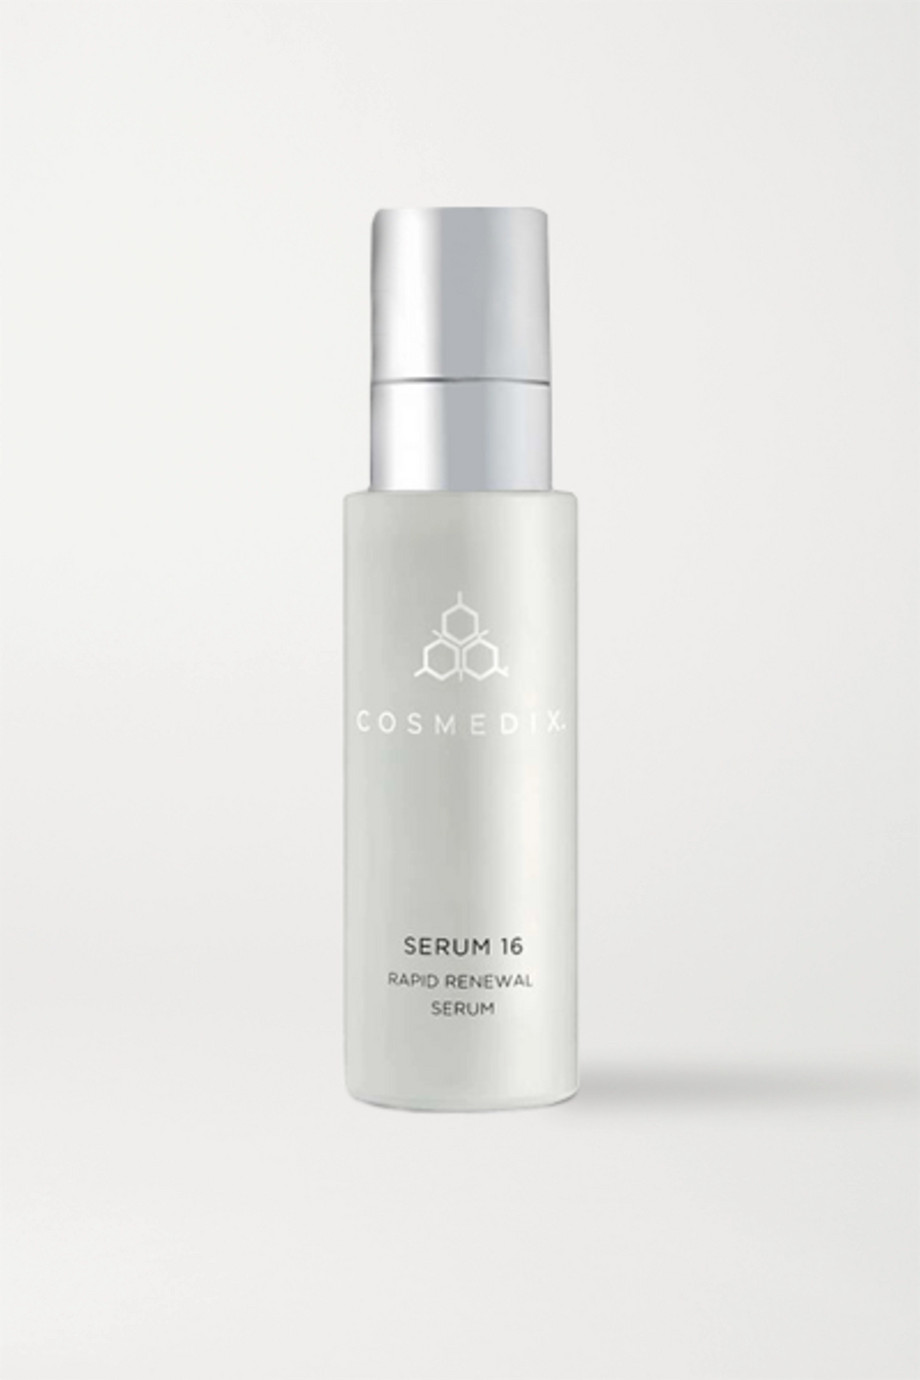 Cosmedix Serum 16 Rapid Renewal Serum, 30ml